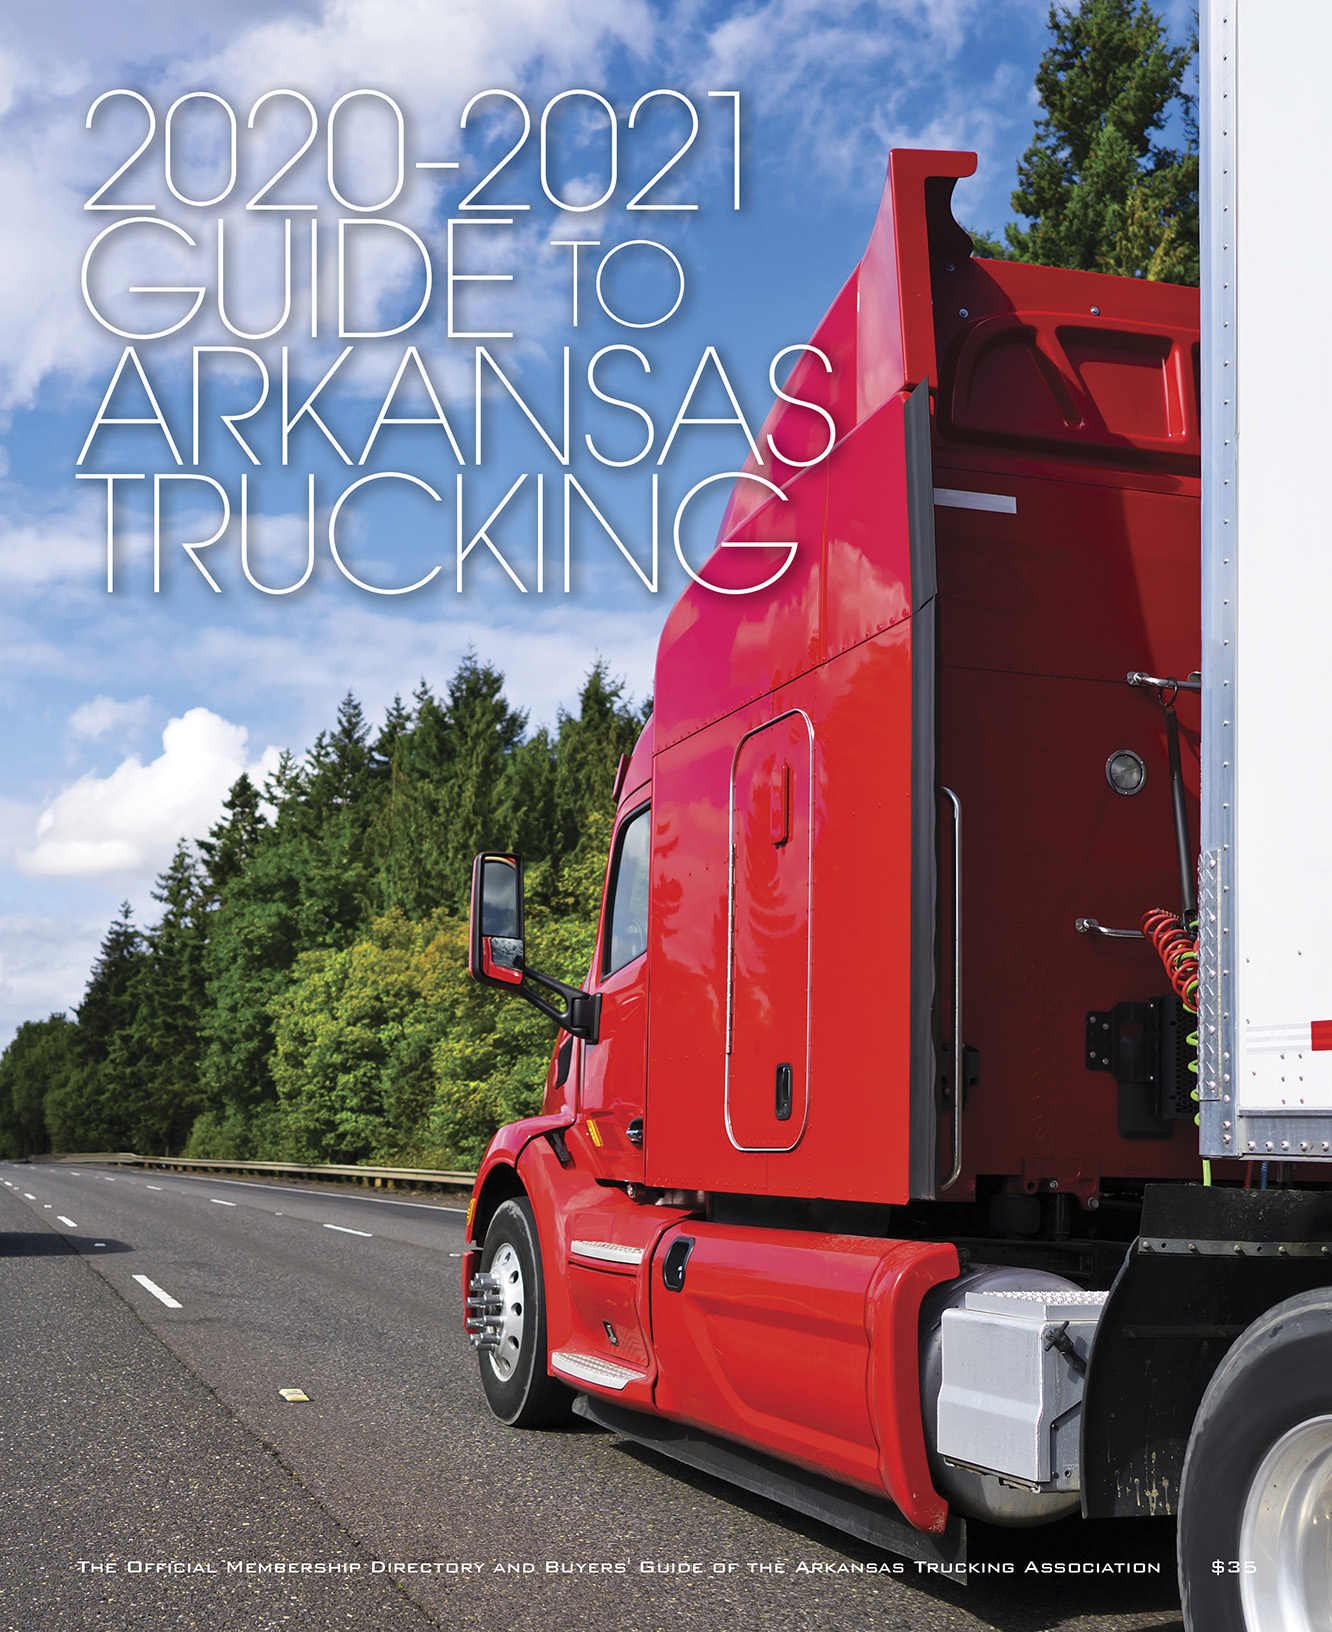 The Guide To Arkansas Trucking